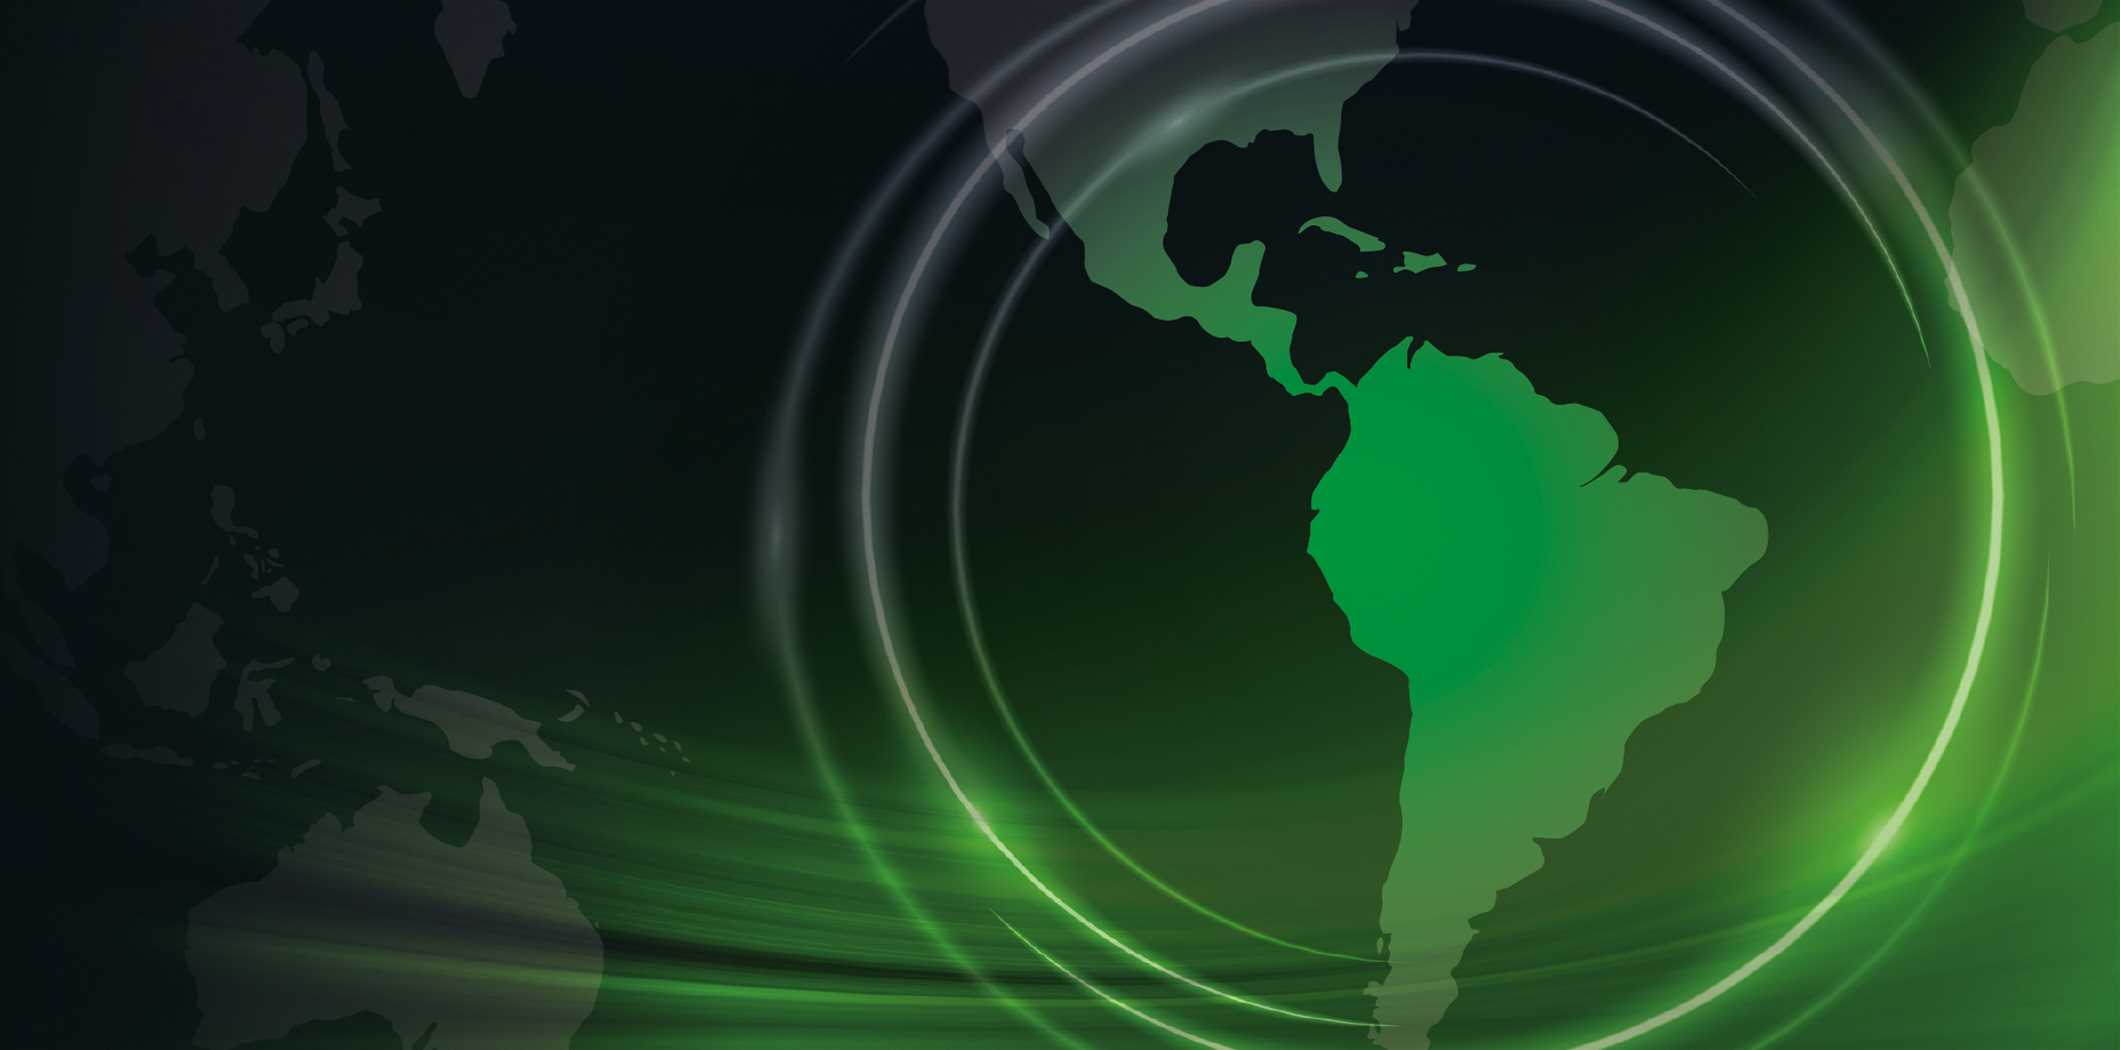 The 7th Latin America Spectrum Conference